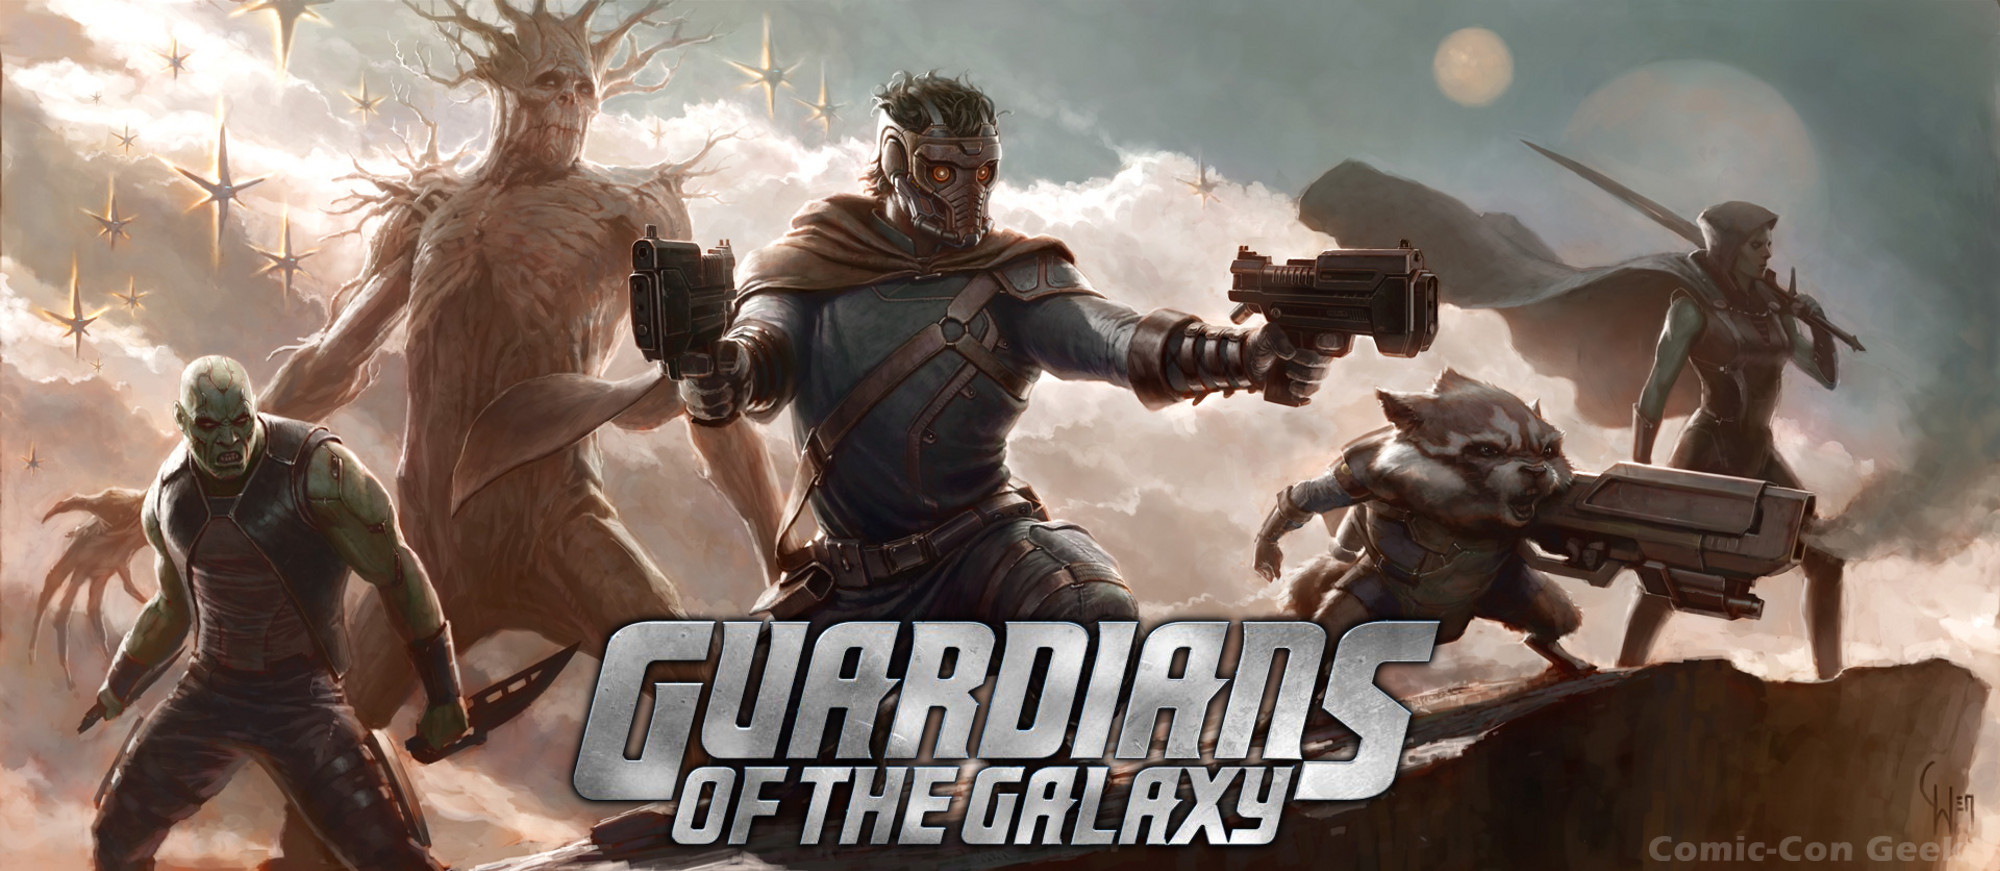 Guardians of the Galaxy - Star-Lord - Drax the Destroyer - Gamora